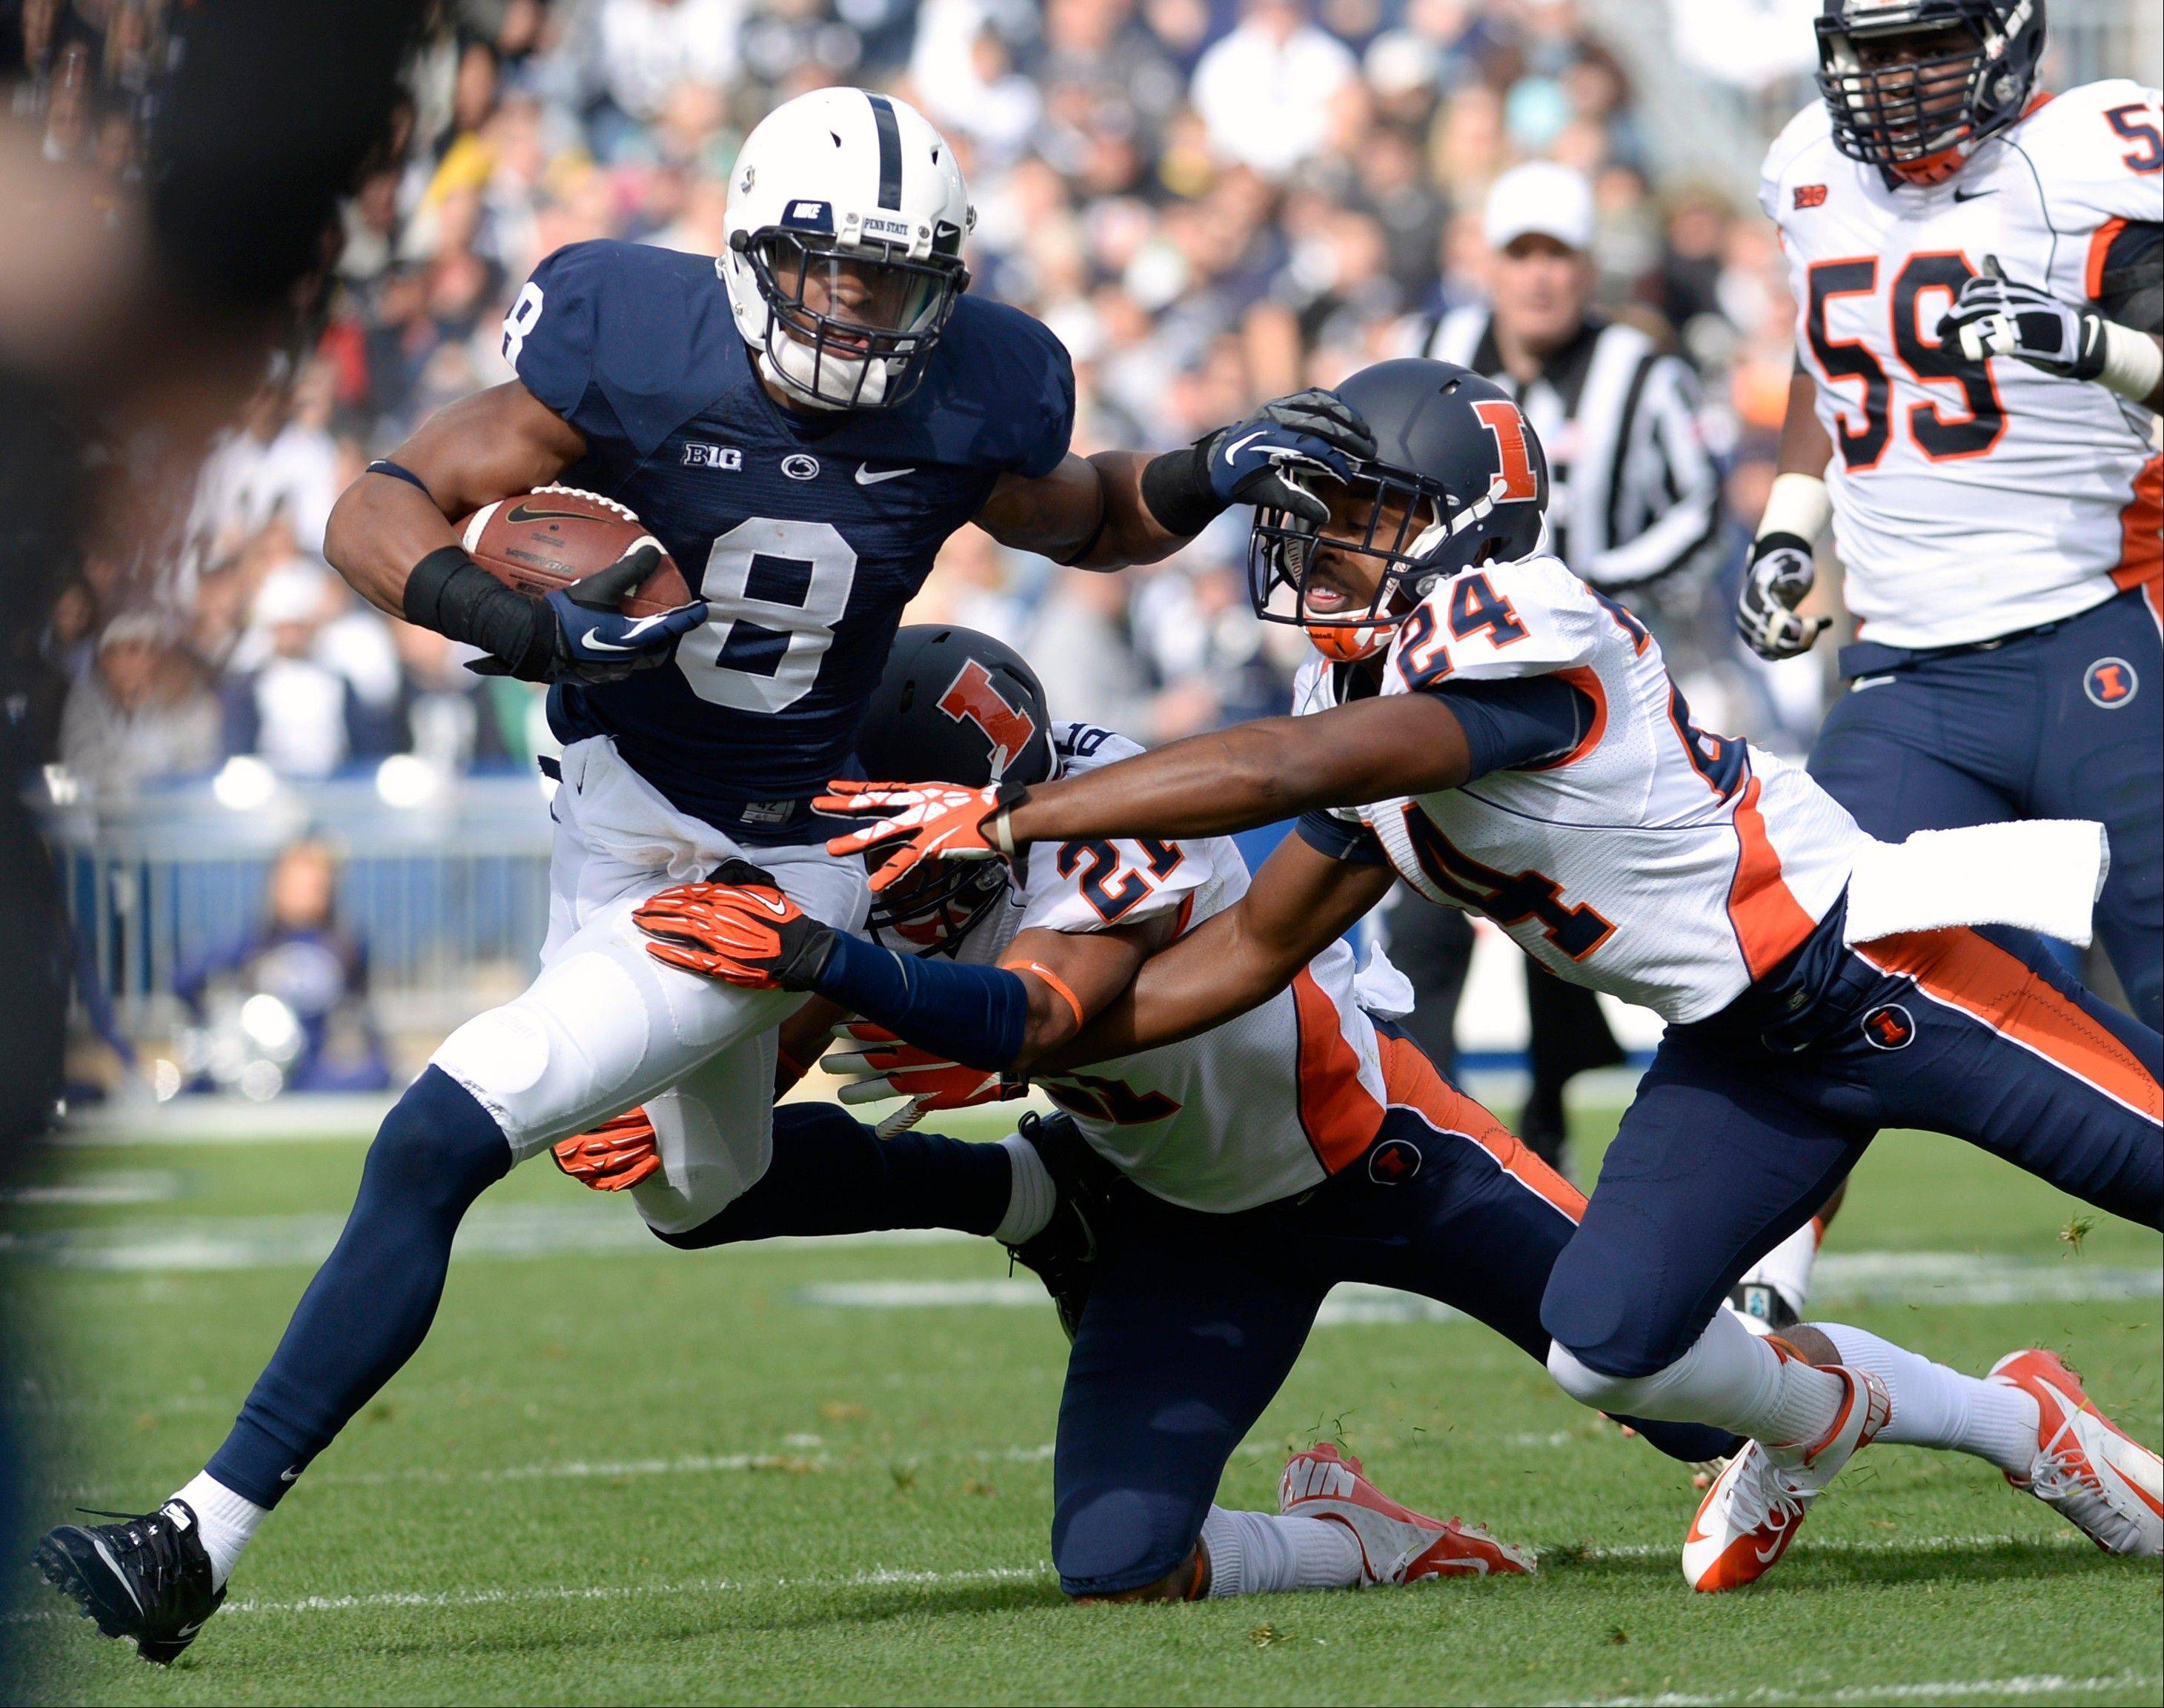 Penn State's Allen Robinson (6) tries to elude Illinois defenders Zane Petty (21) and Darius Mosely (24) in the first quarter of an NCAA college football game against Illinois in State College, Pa., Saturday, Nov. 2, 2013. (AP Photo/John Beale)